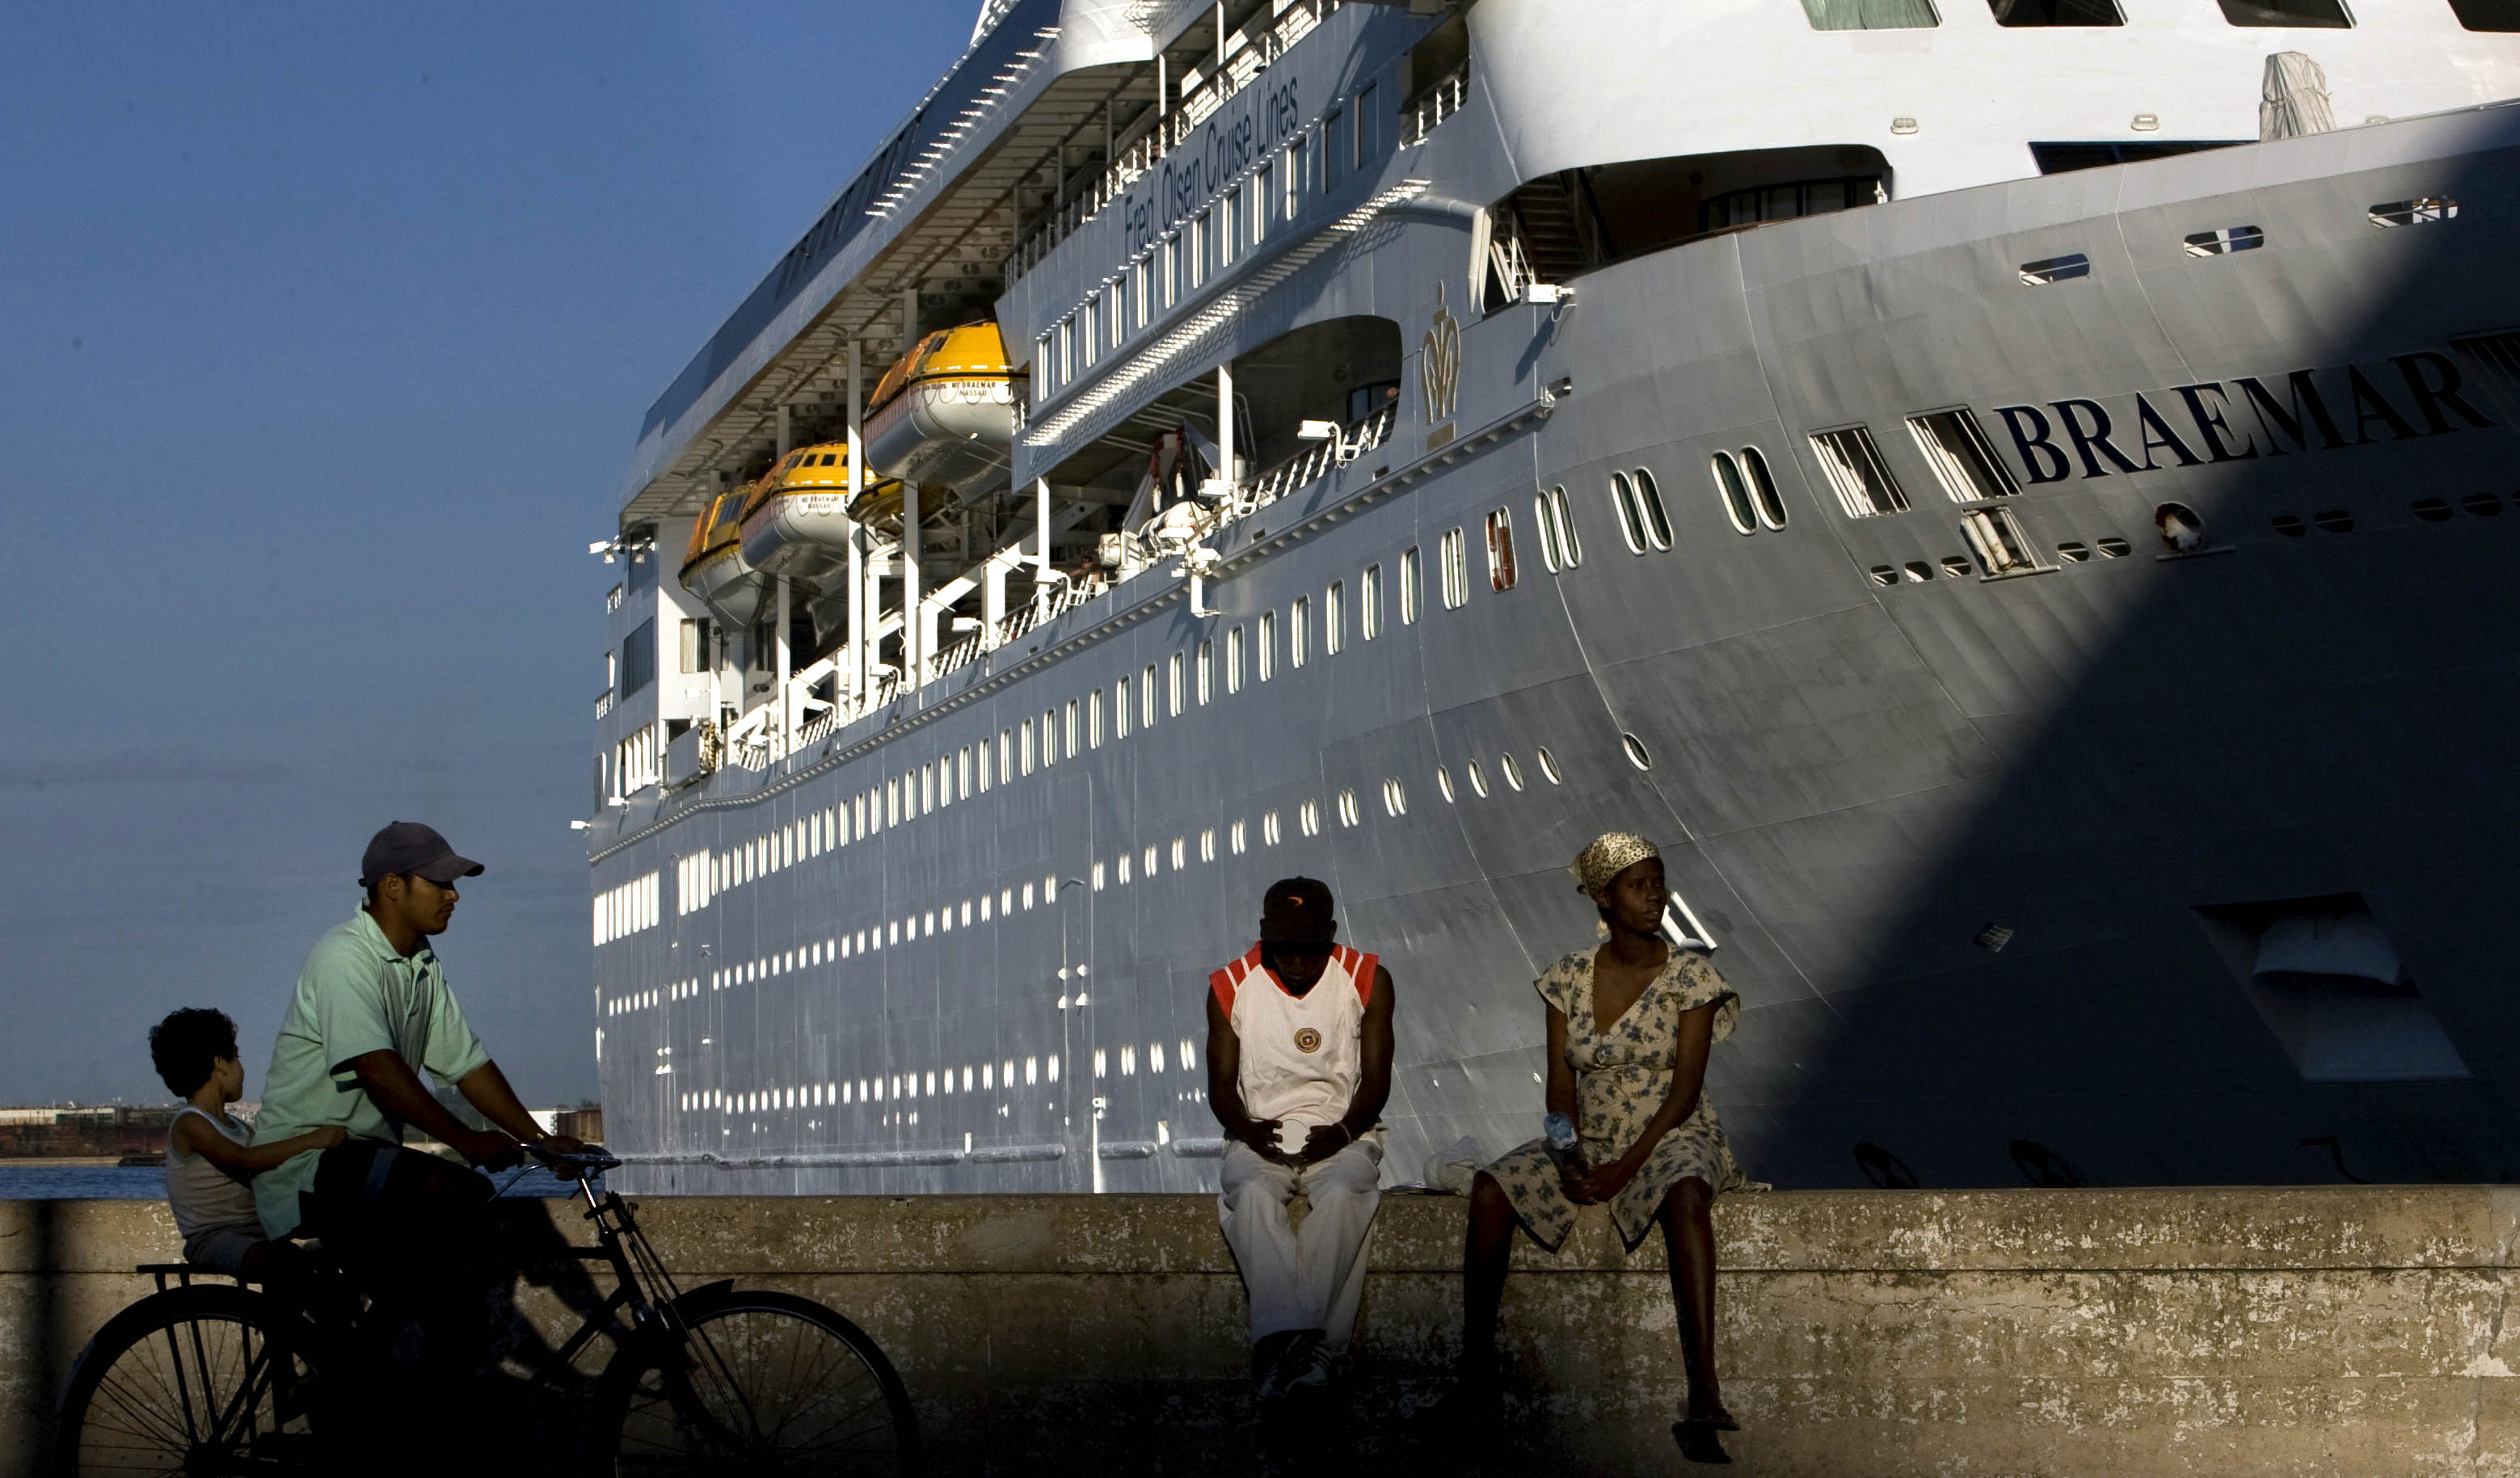 Cruise ship sails to St. Maarten after COVID-19 scare